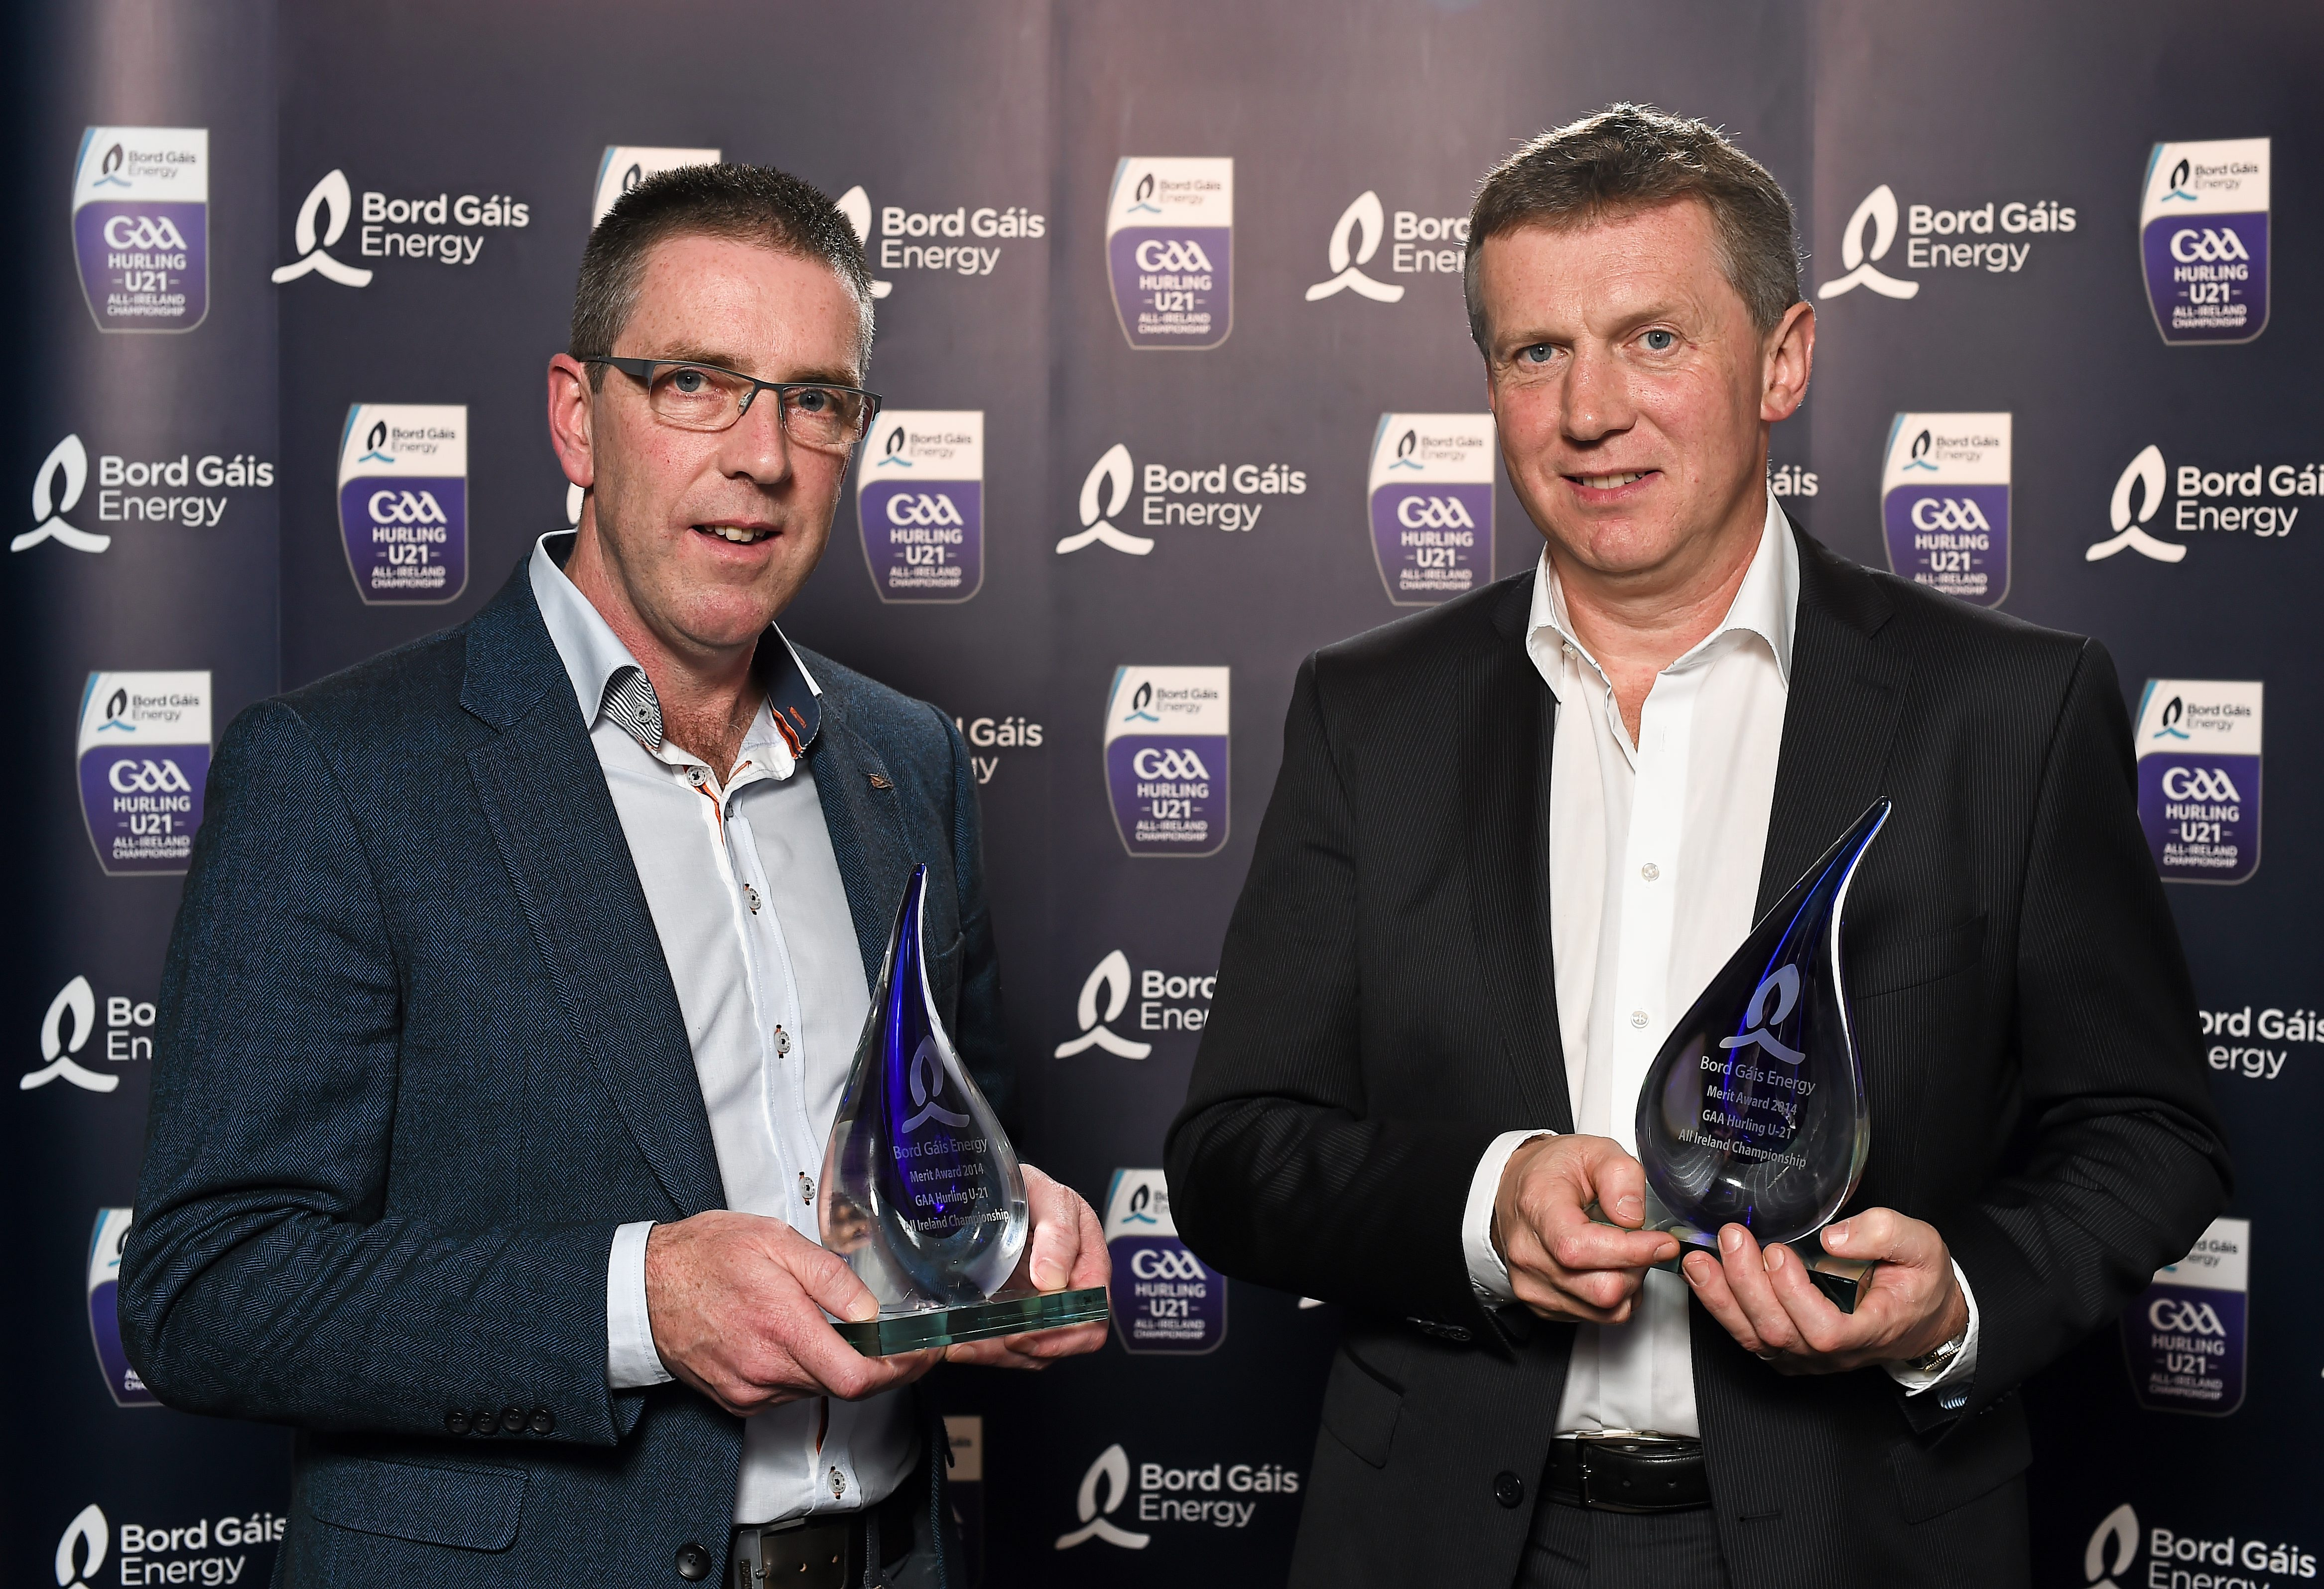 Clare Under 21 joint managers Gerry O'Connor, left, and Donal Moloney, who received a merit award. Bord Gáis Energy All-Ireland GAA Hurling Under 21 Team of the Year Awards, Croke Park, Dublin. Picture credit: Paul Mohan / SPORTSFILE